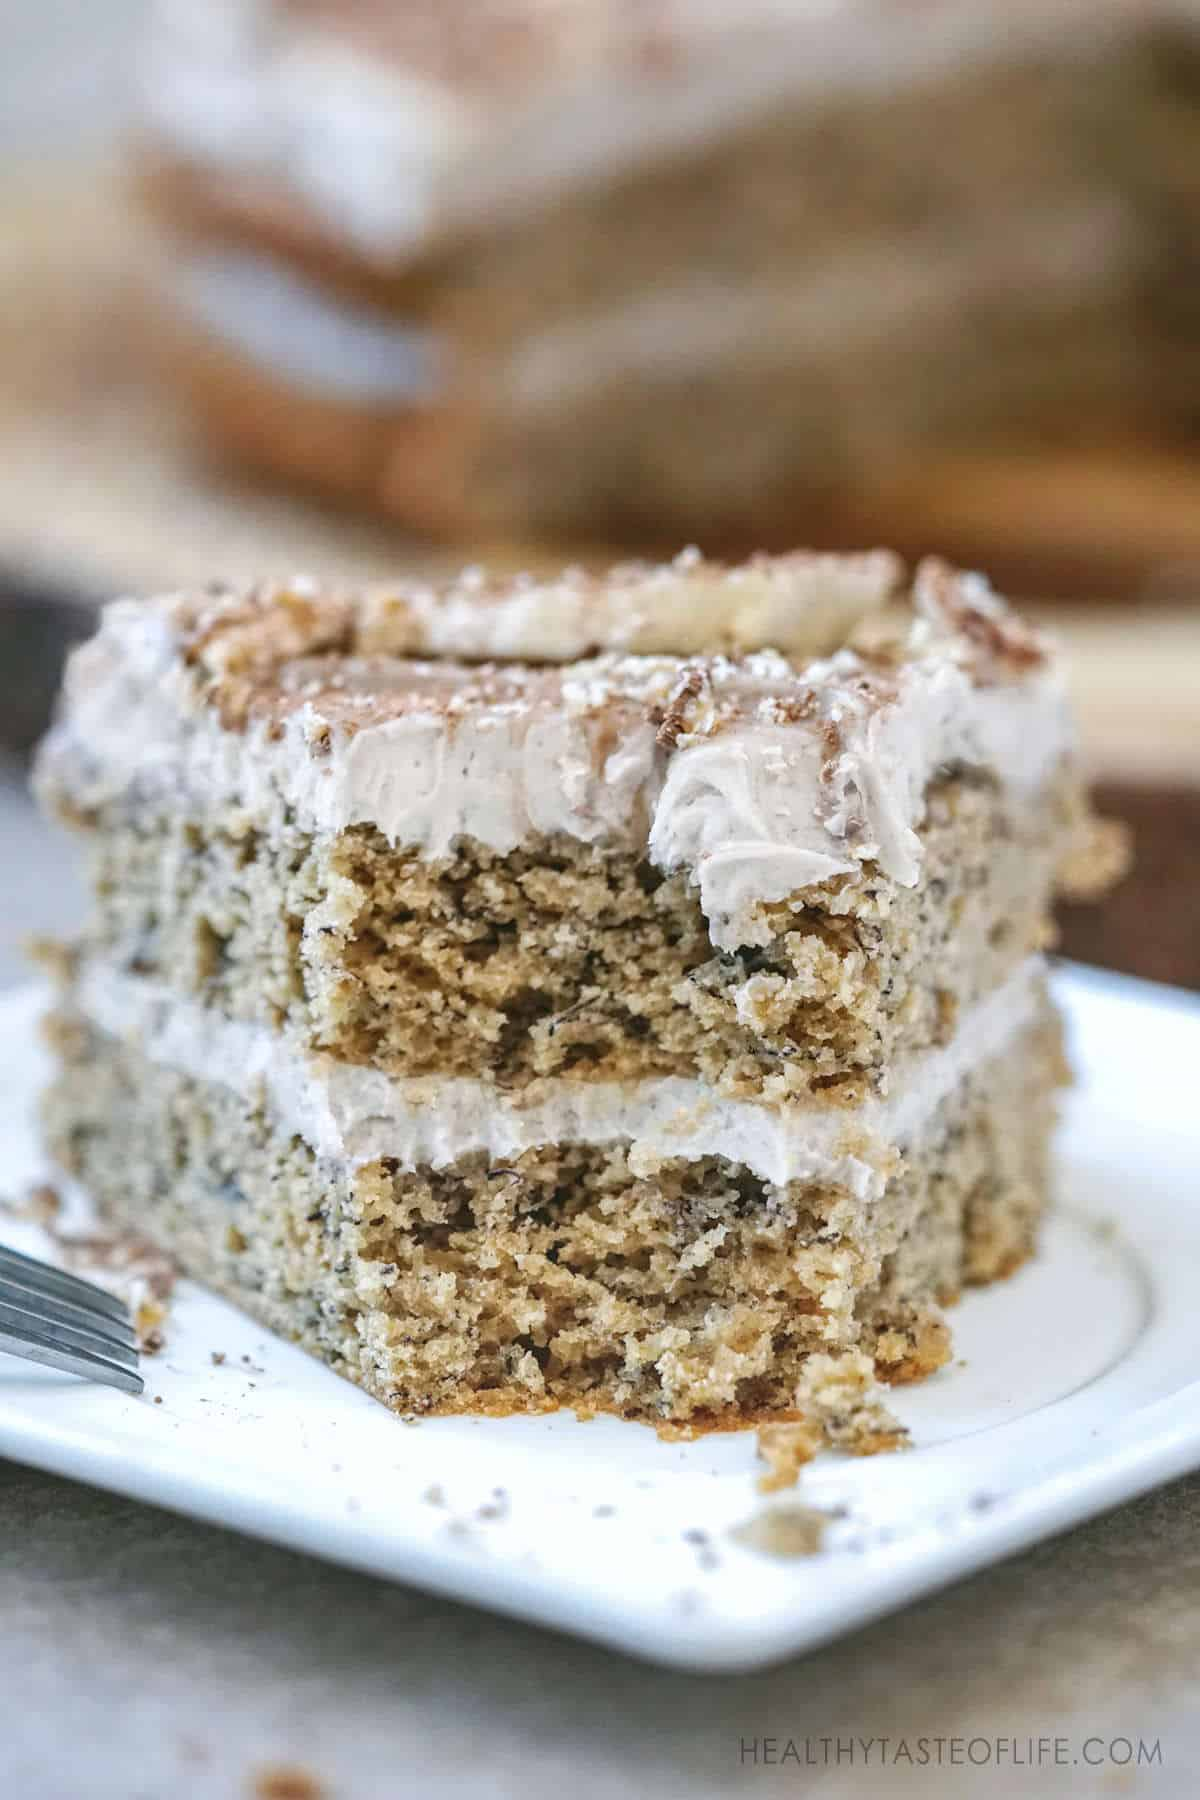 Gluten free dairy free banana cake recipe. Moist gluten free banana cake with dairy free frosting and without refined sugar free (with a few replacements). Healthy gluten free #bananacake